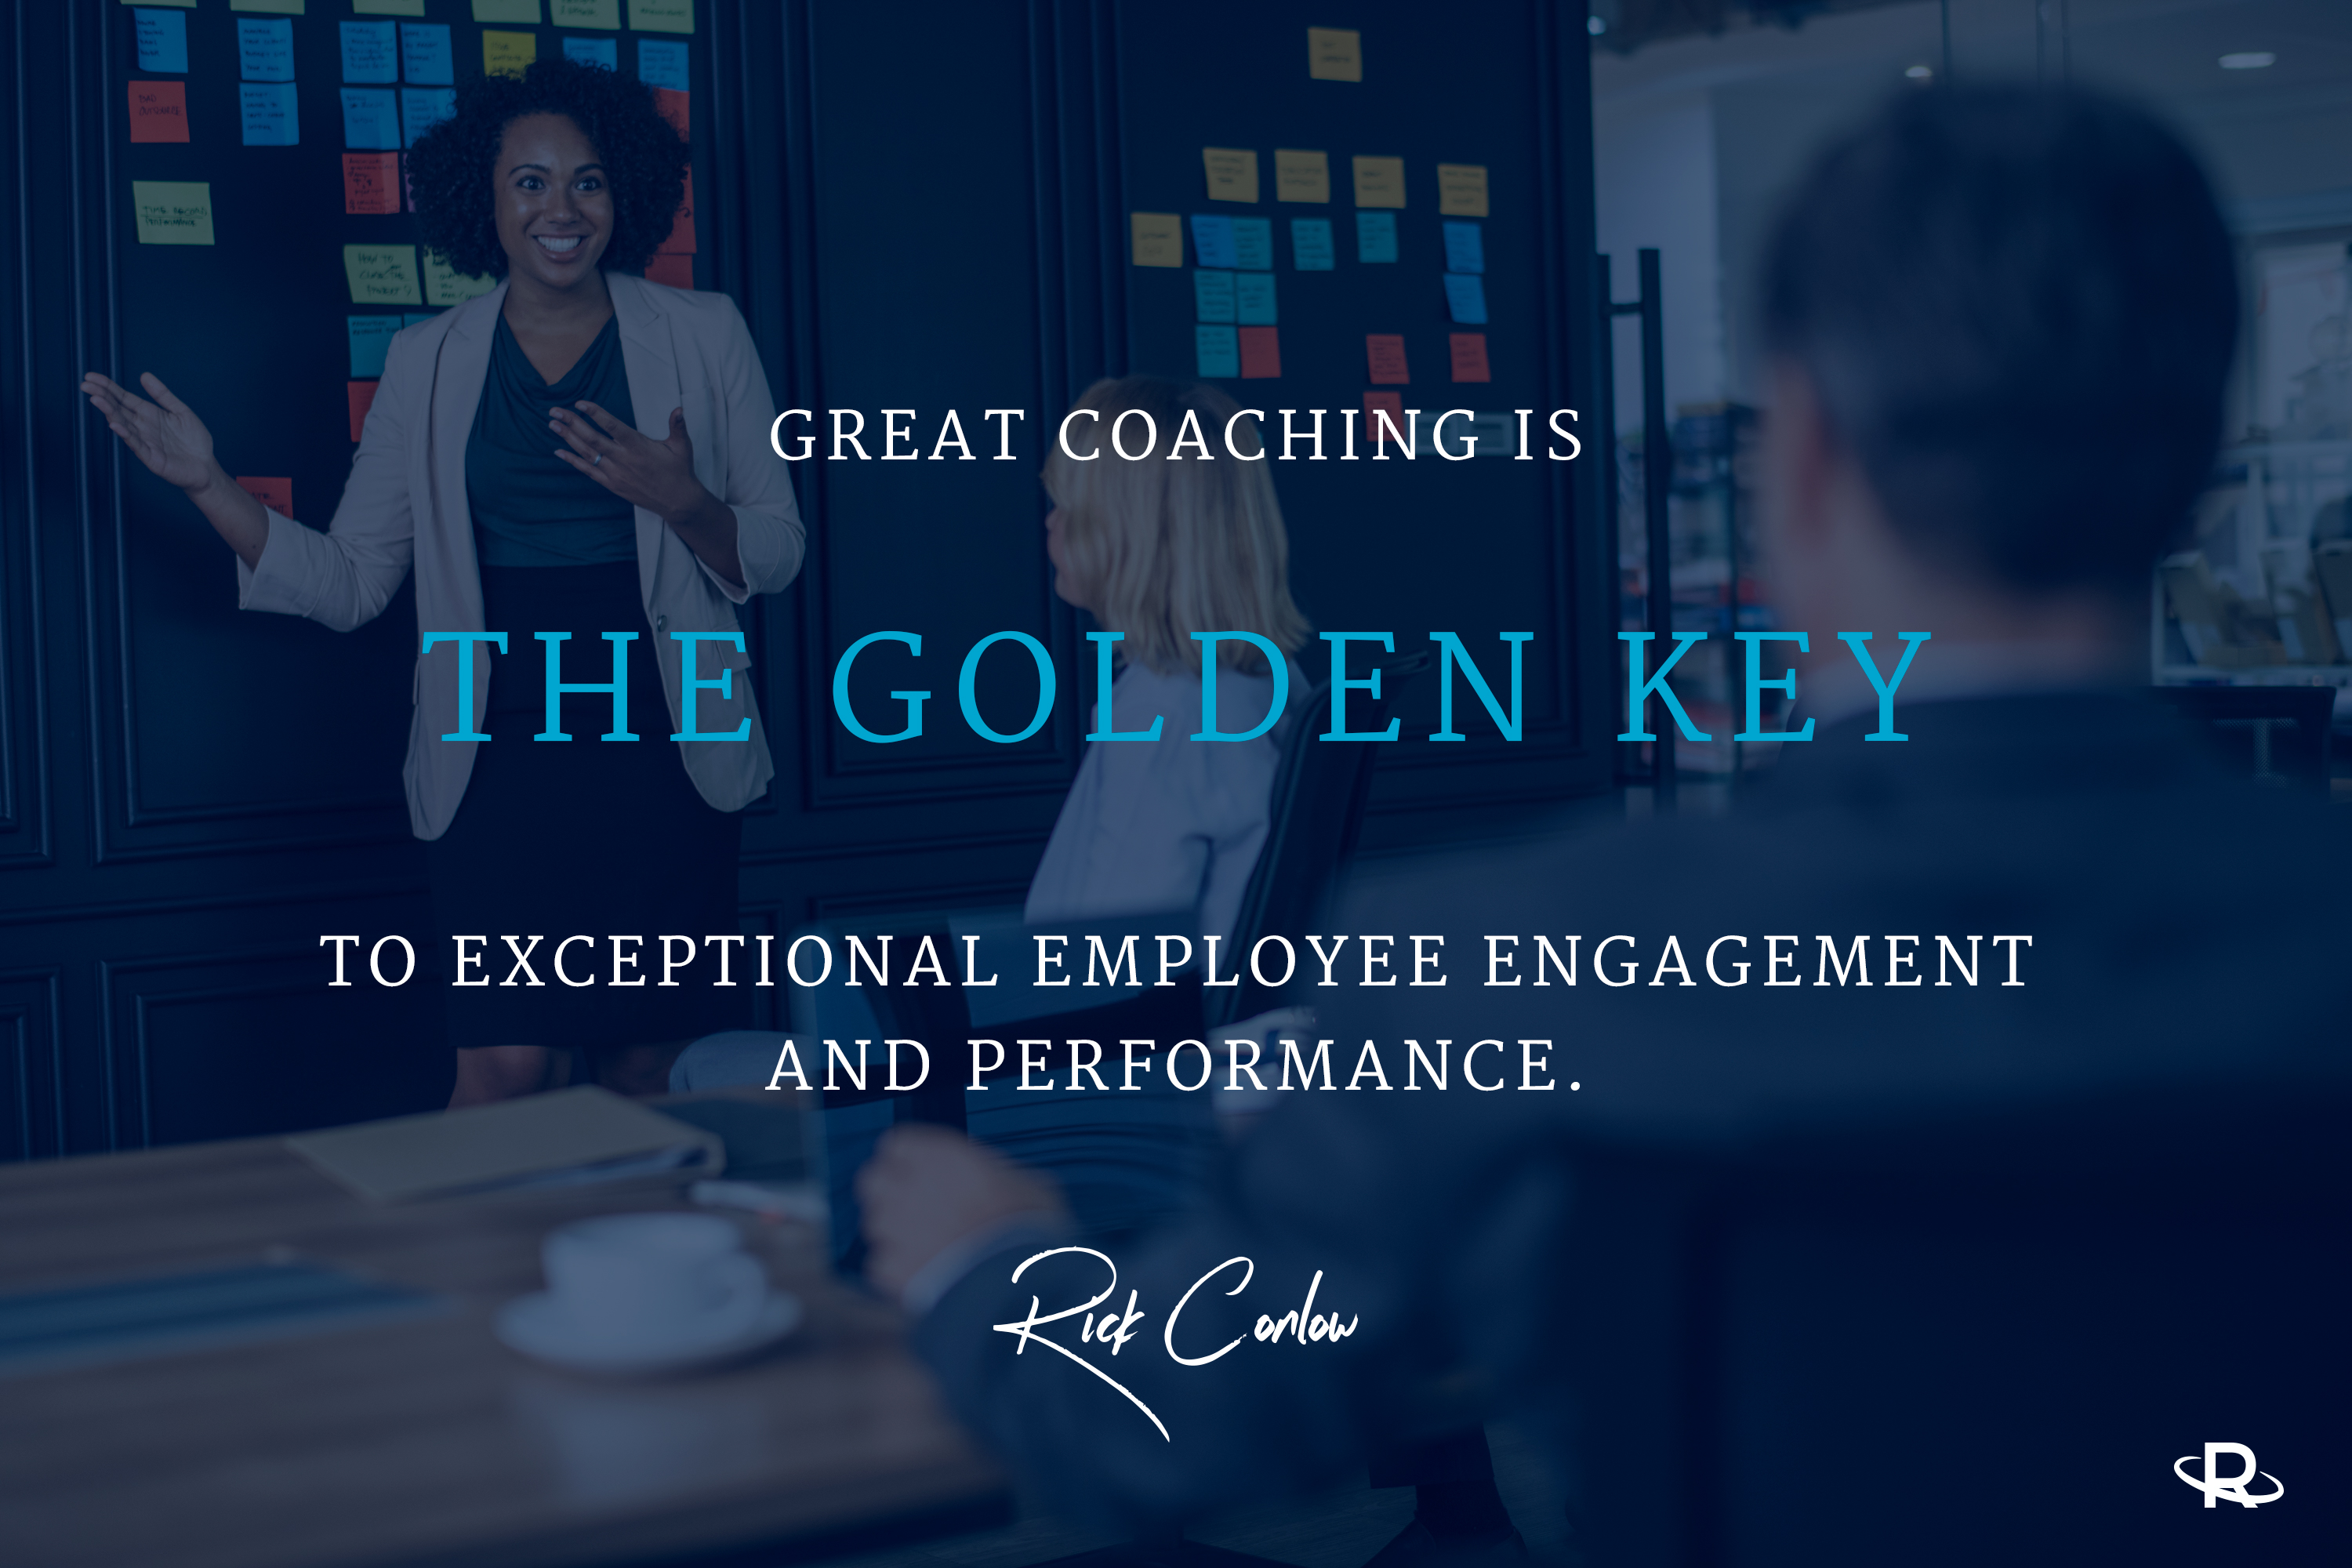 Great Coach Quotes | 21 Great Leadership Coaching Quotes Rick Conlow